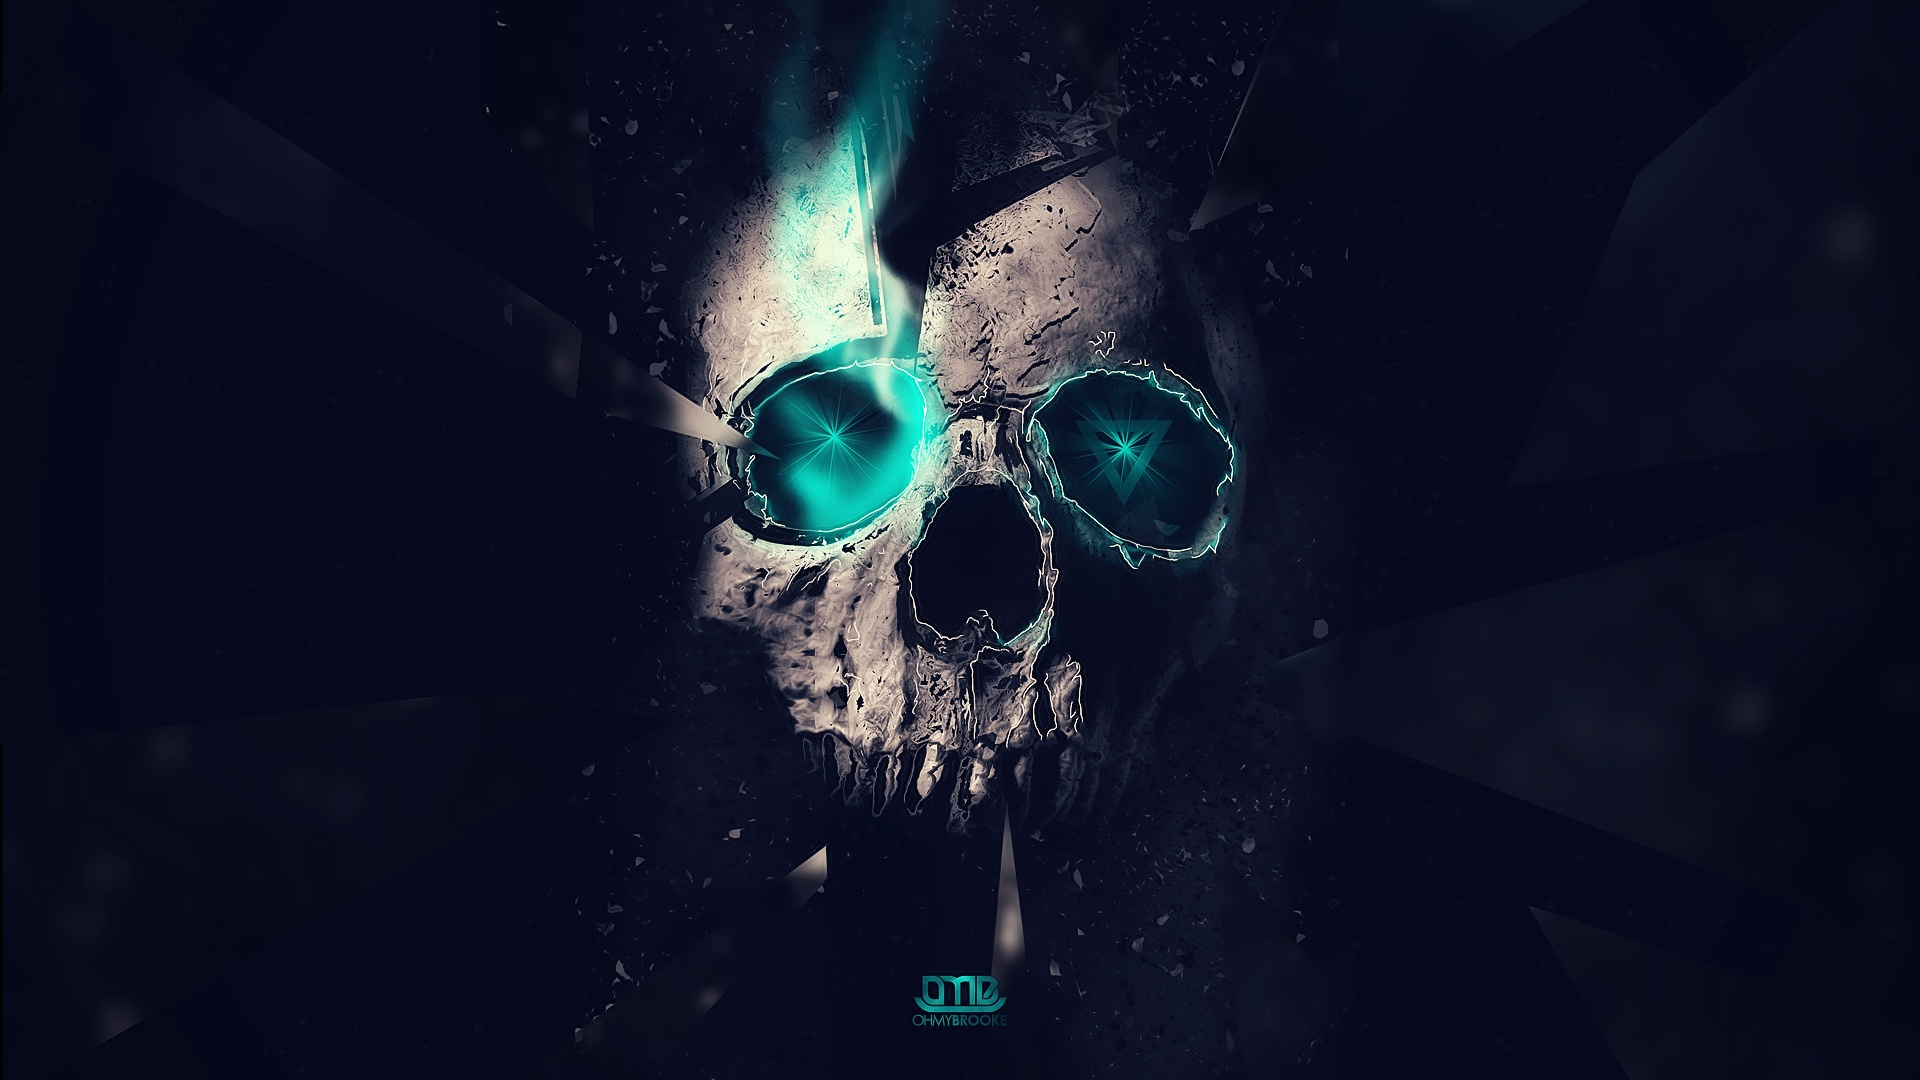 Free download Top 3d Skull Wallpaper Wallpapers [1920x1080] for your